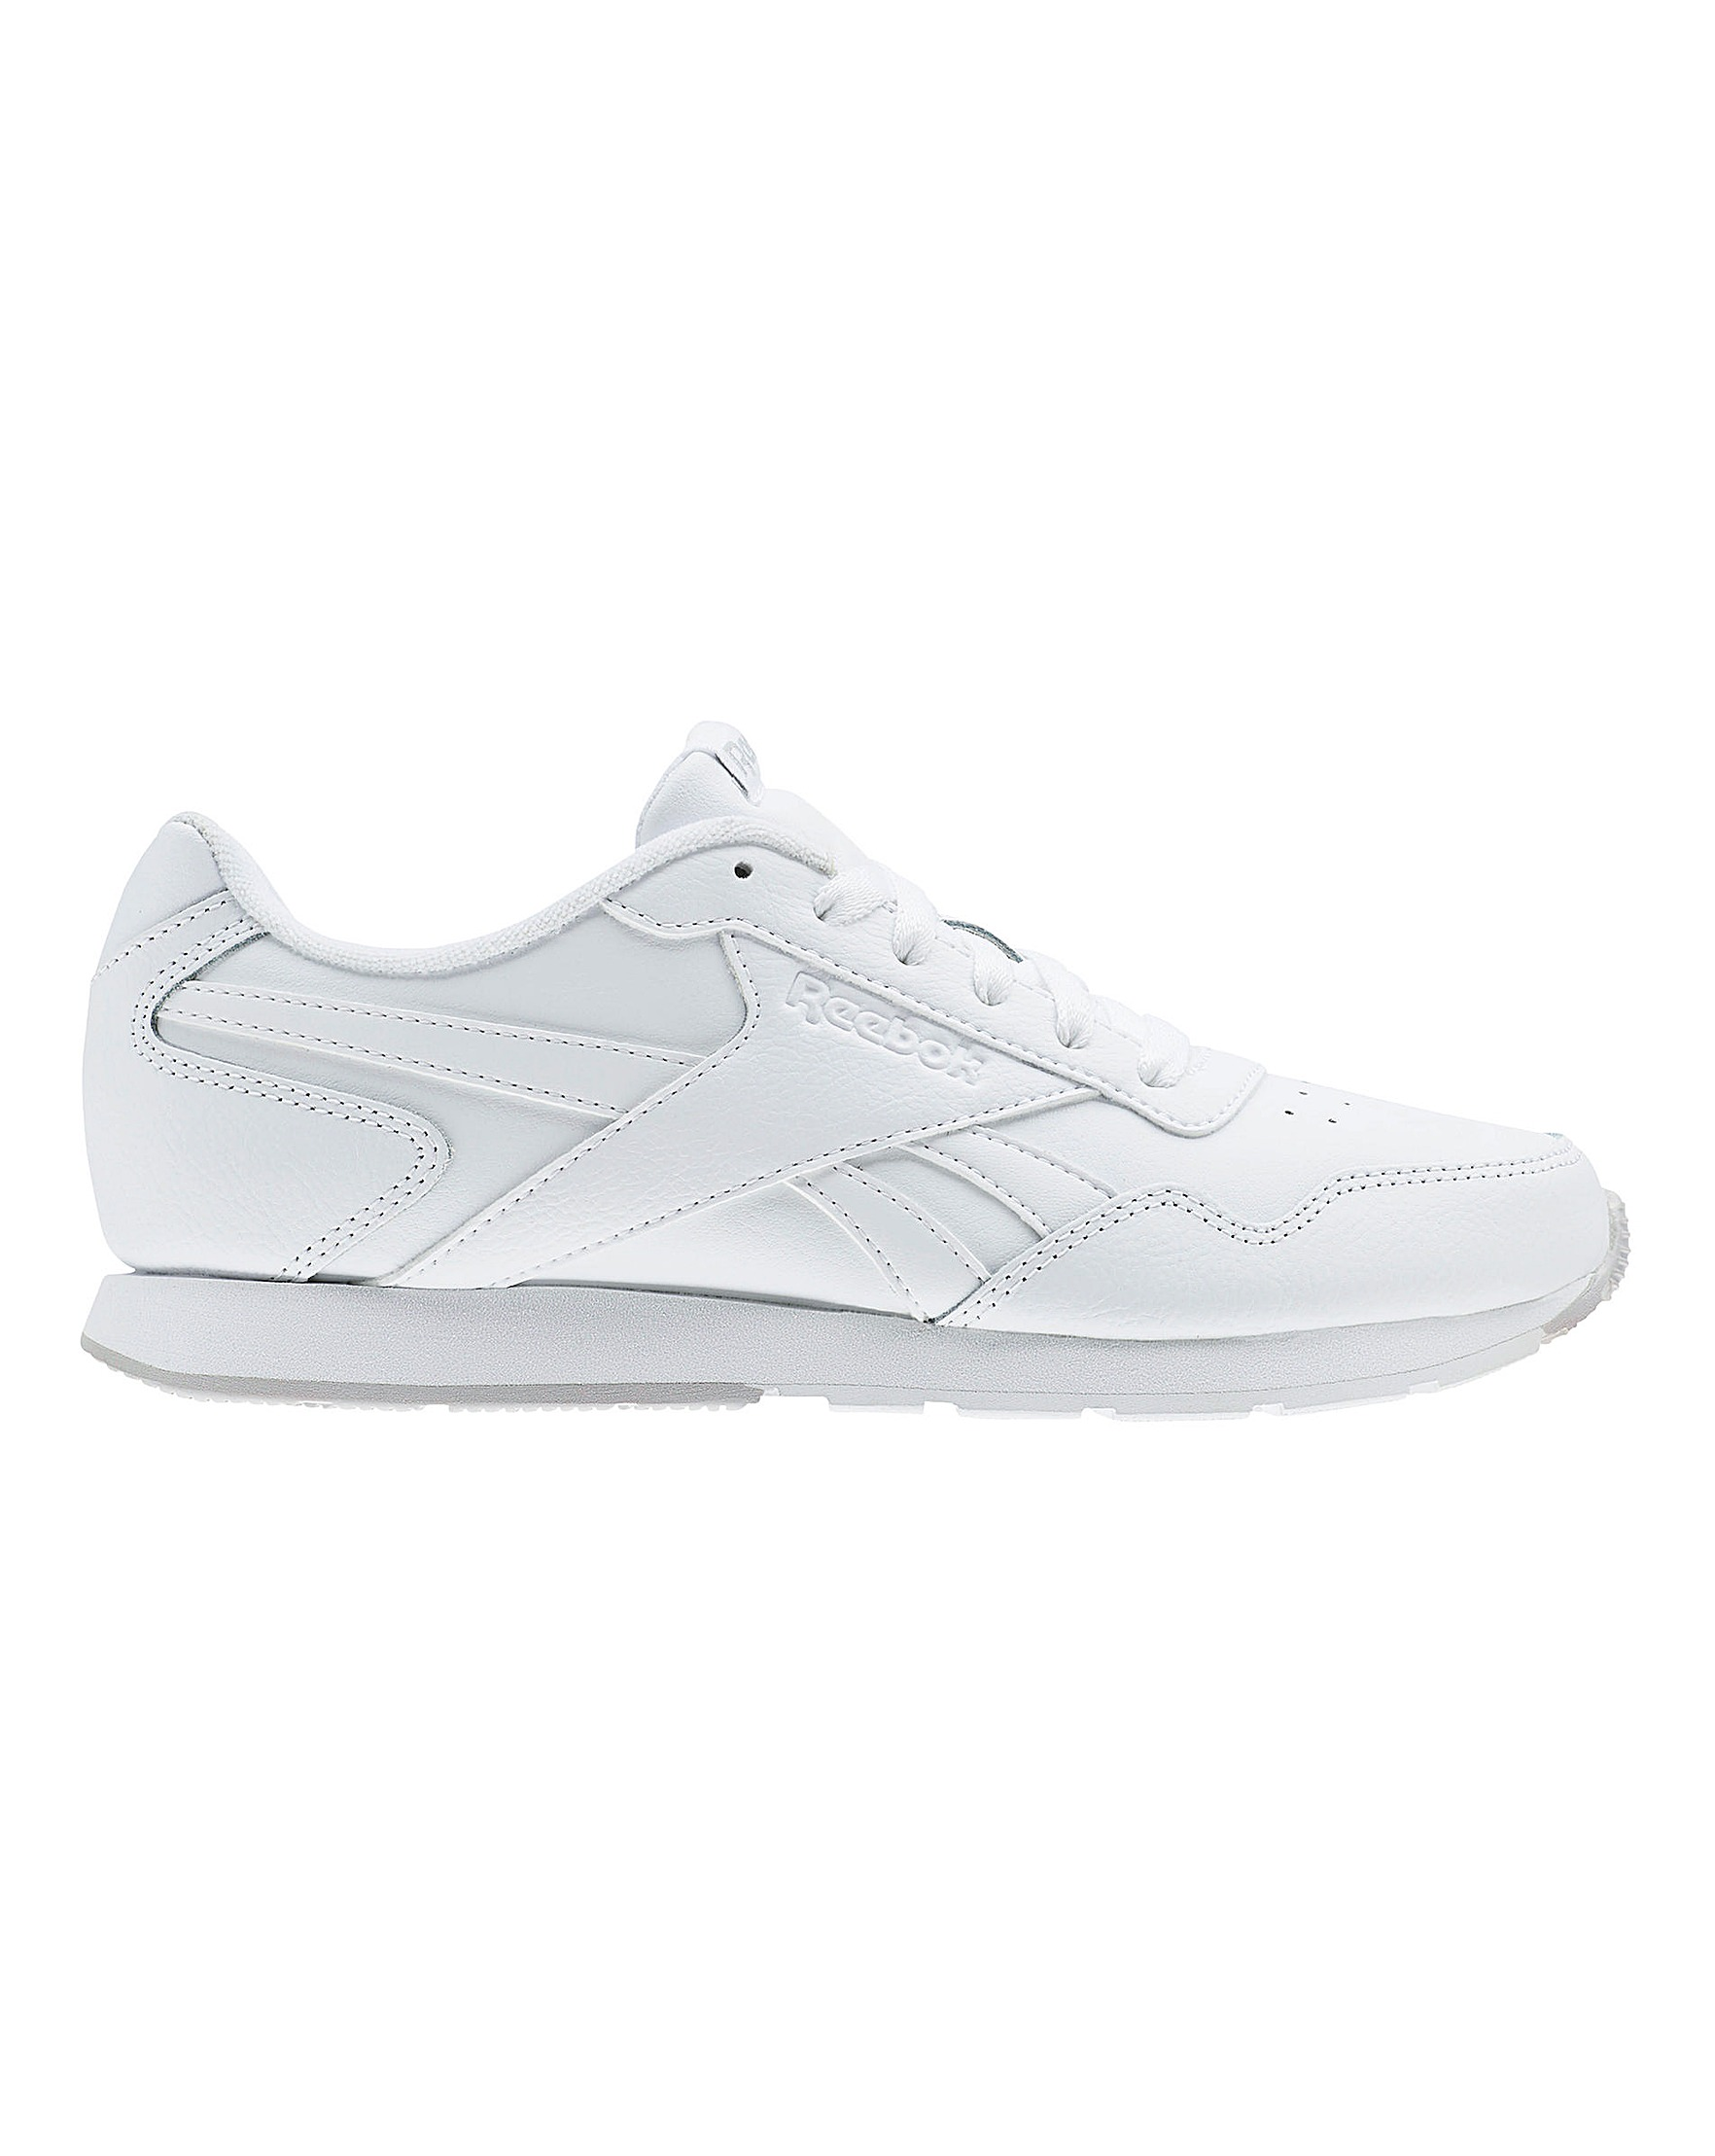 090aa0d1 Reebok Royal Glide Womens Trainers | Simply Be